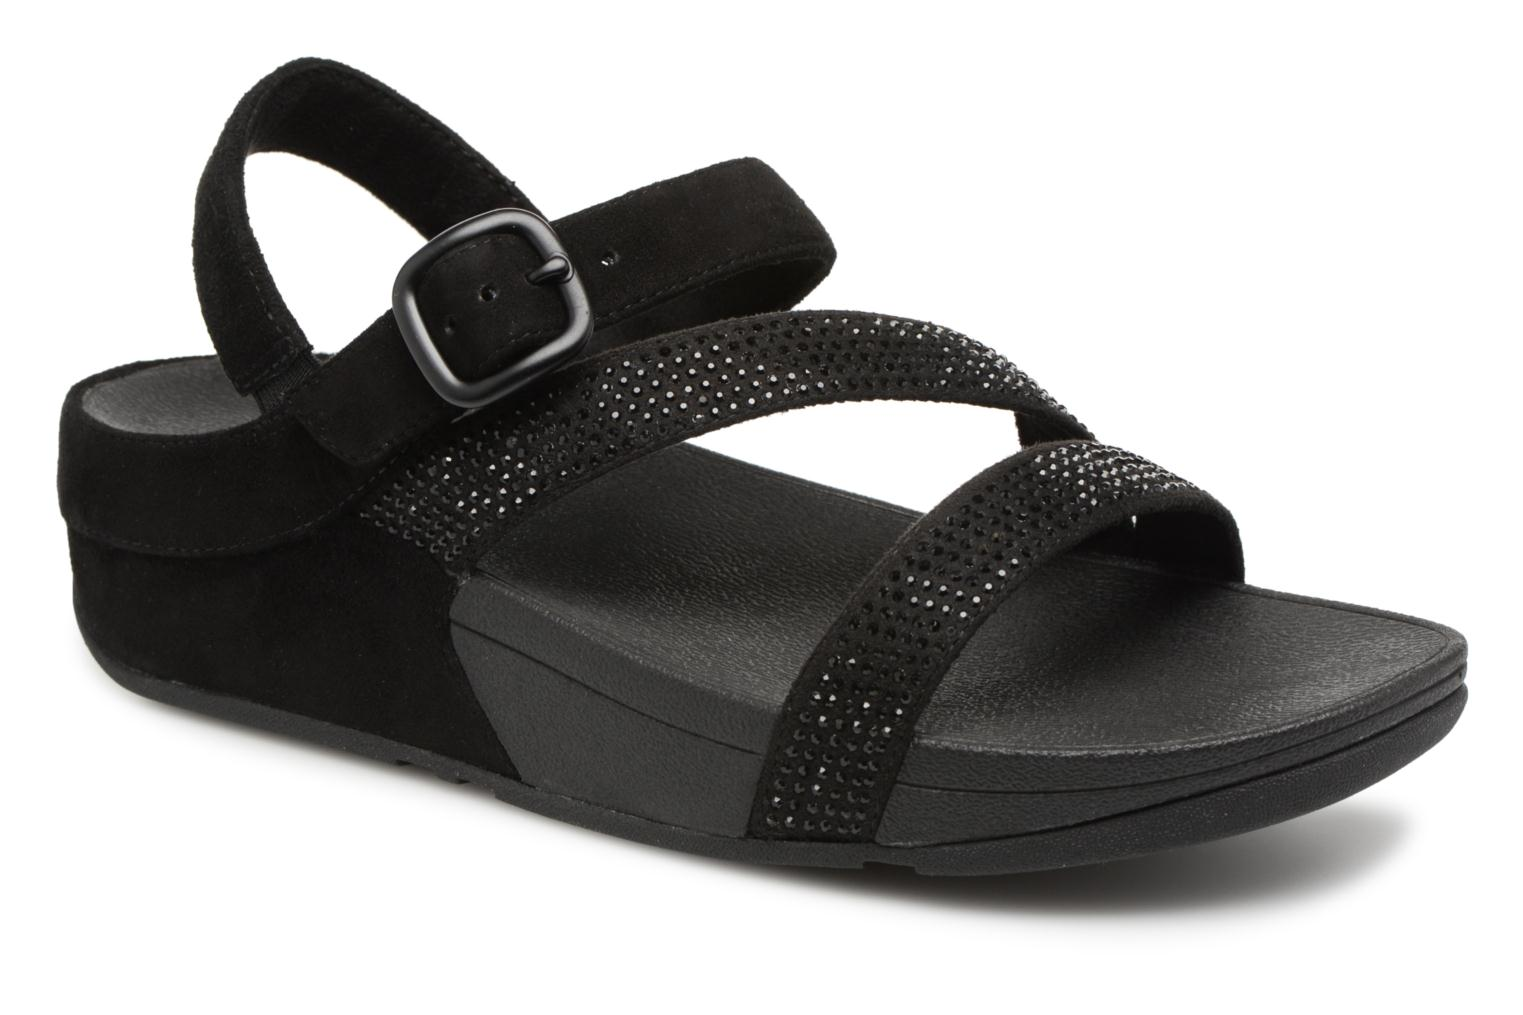 Marques Chaussure femme FitFlop femme Slinky Rokkit Z Strap Sandal All black